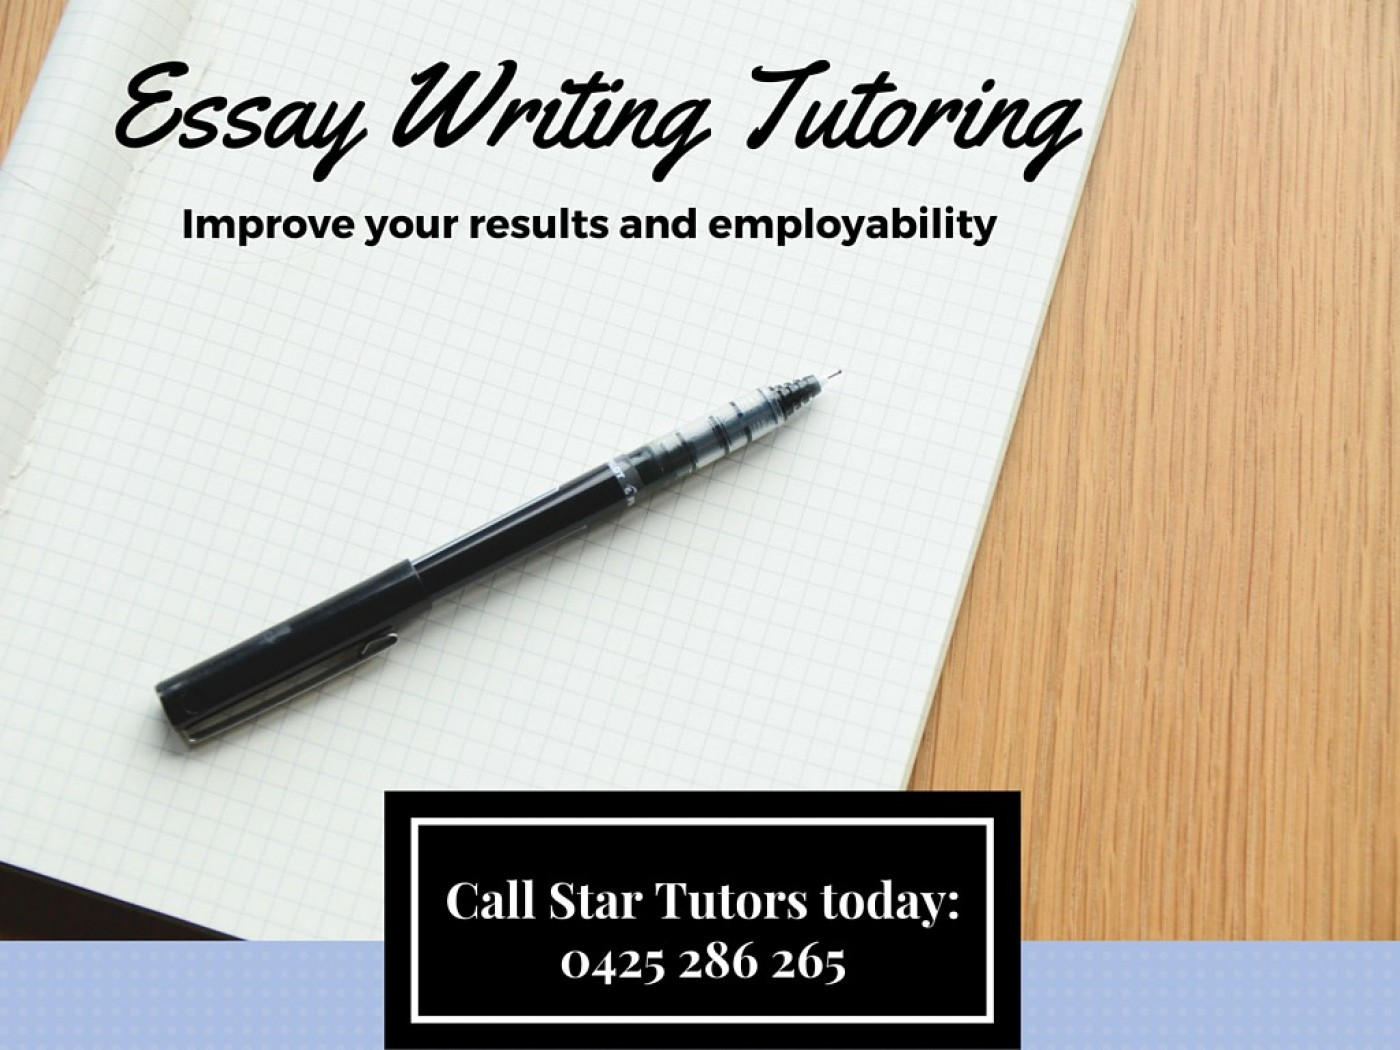 001 Tutoring Essay Writing Example For Improved Results Best Tutorslbourne Tutor Wollongong Sydney Toronto Tutorial Pdf Jobs Free Near Awesome Austin Tx 1400